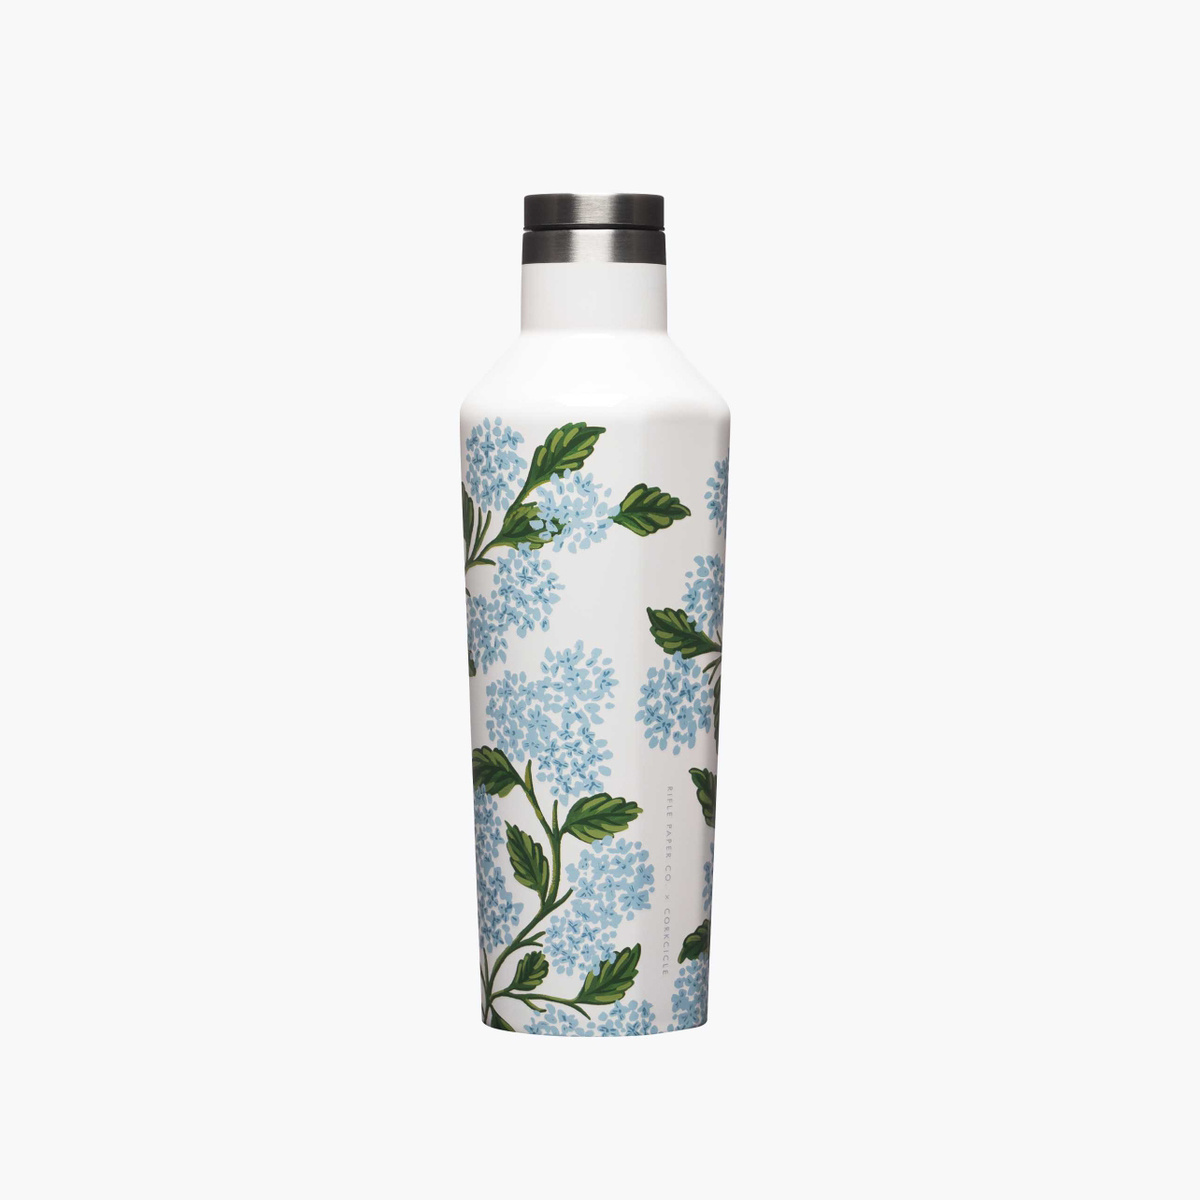 Corkcicle - CO Corkcicle x Rifle Paper - Cream Hydrangea Canteen